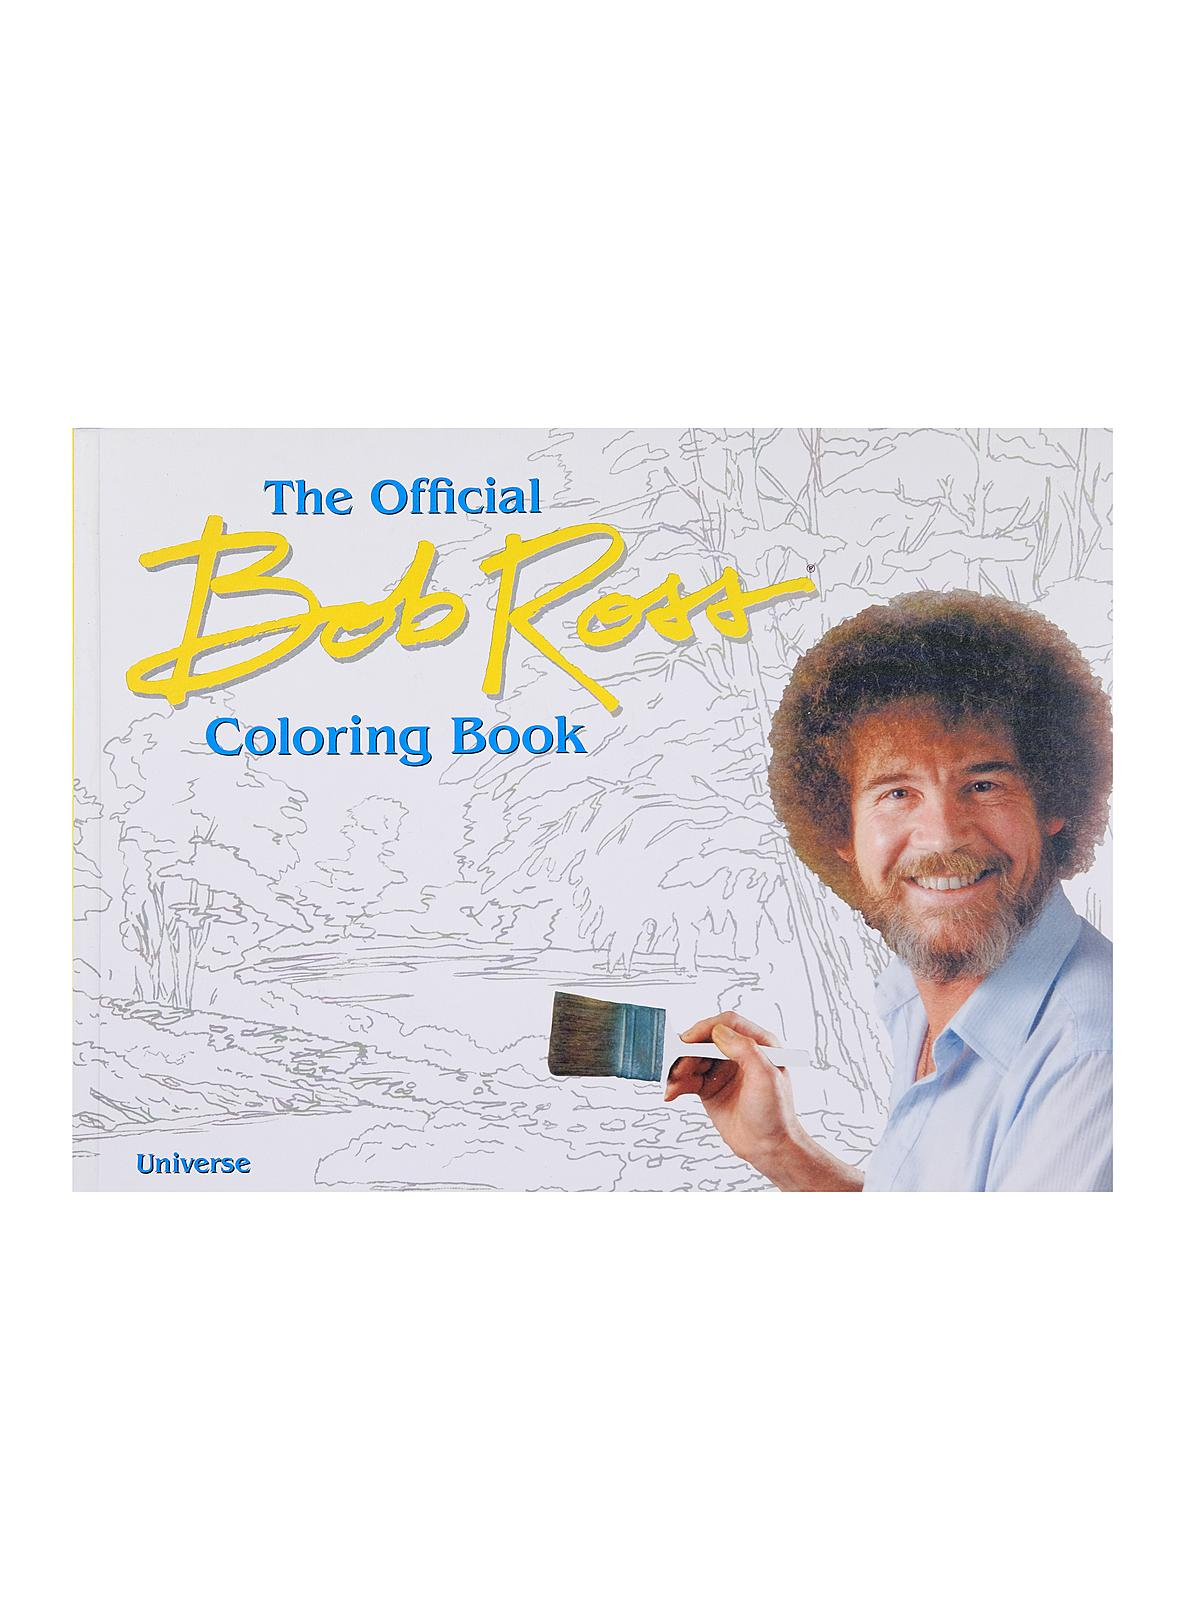 The Official Bob Ross Coloring Book